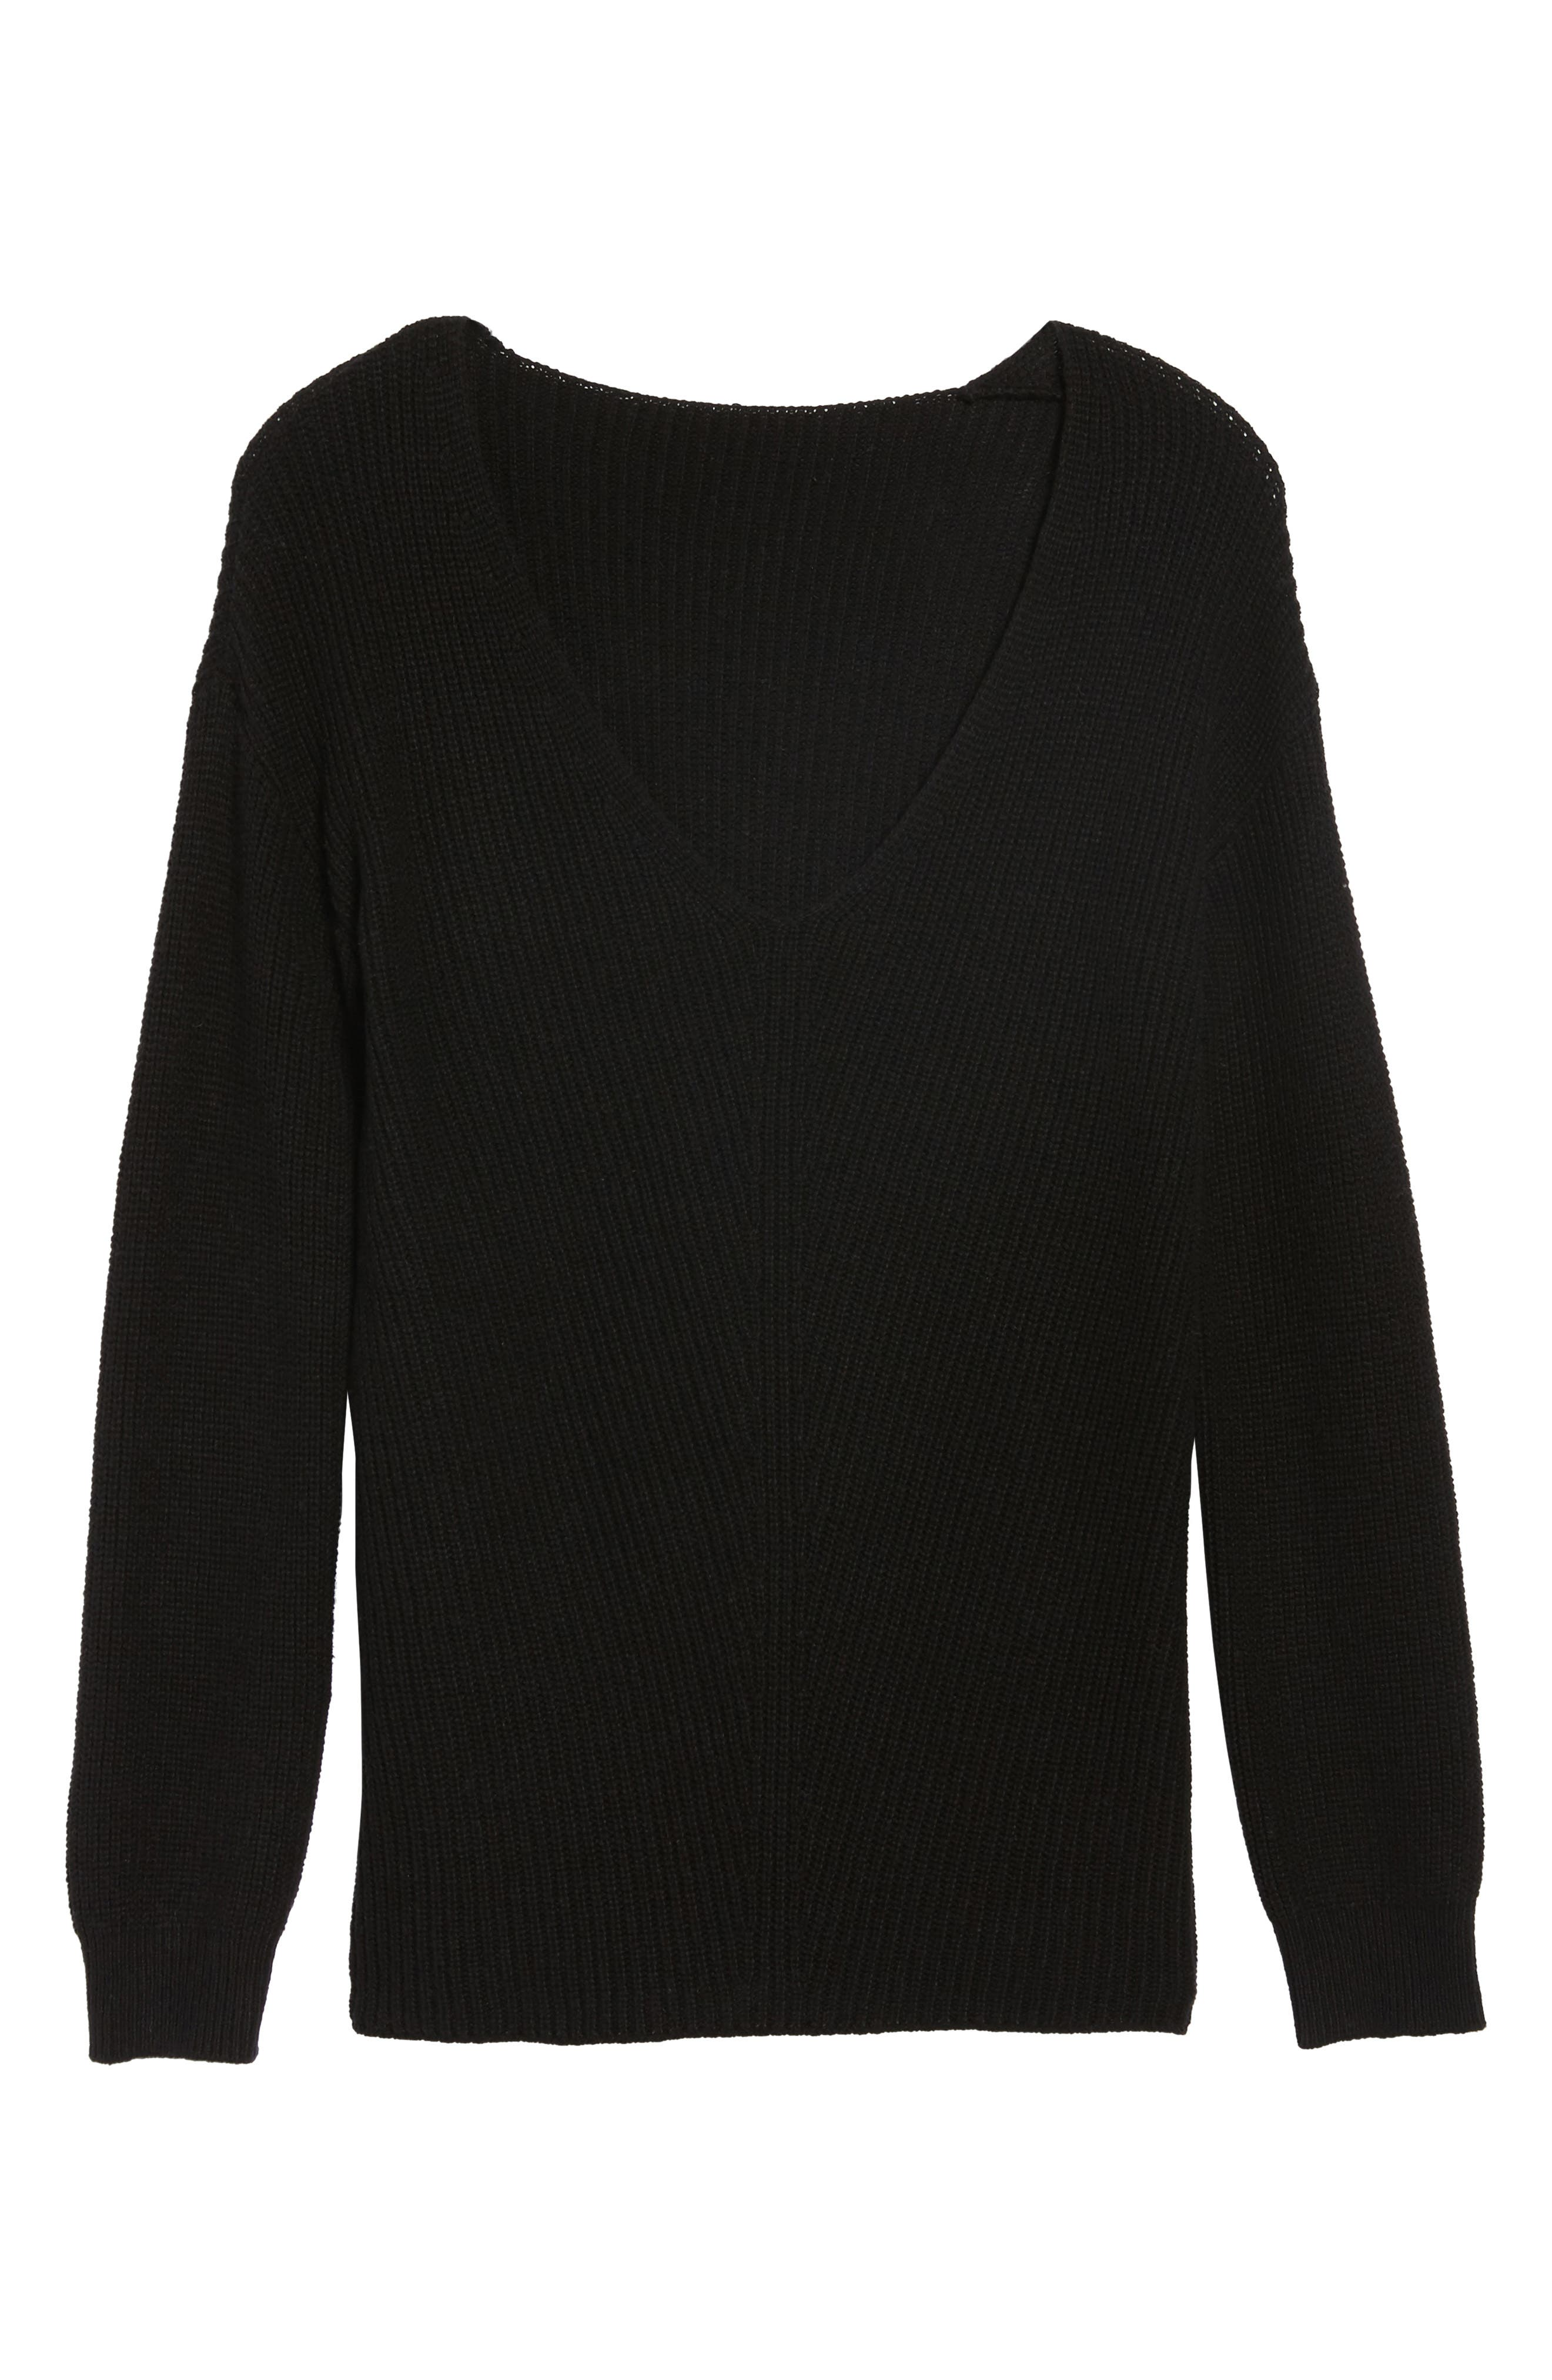 V-Neck Sweater,                             Alternate thumbnail 6, color,                             001